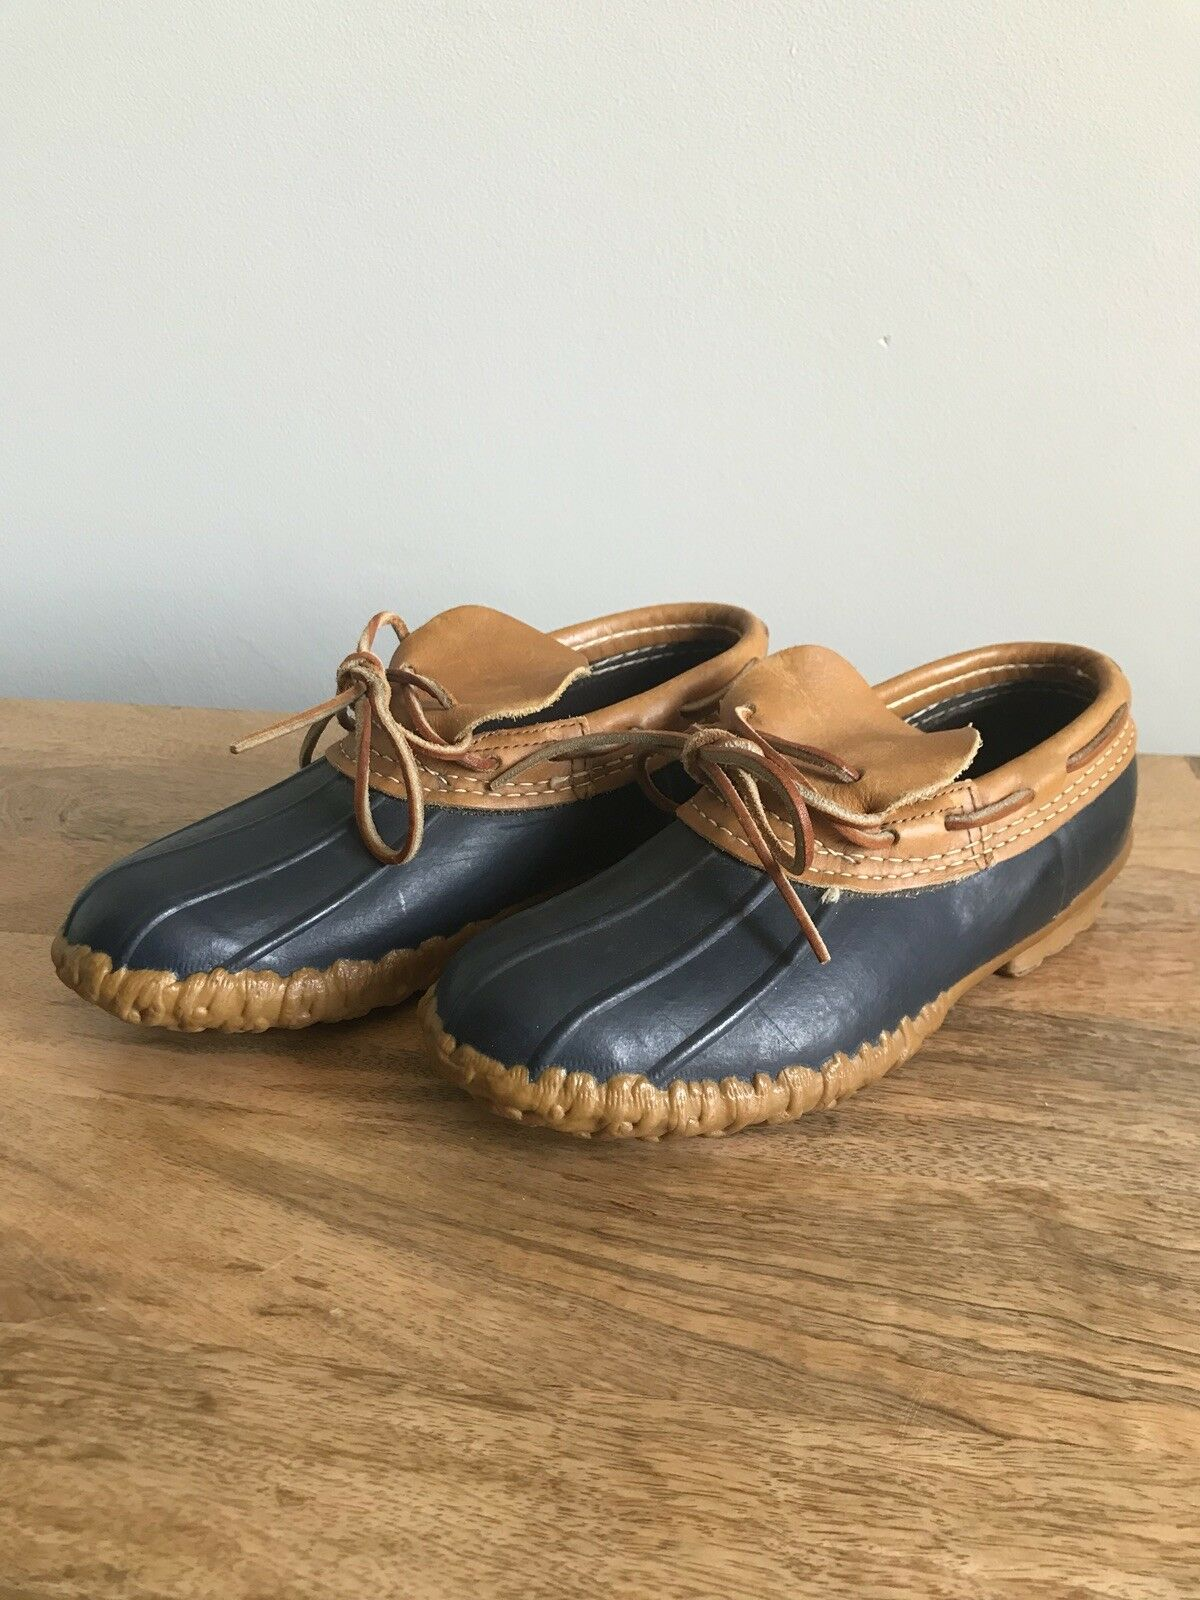 vieni a scegliere il tuo stile sportivo LL Bean Rubber Moc Duck scarpe Vtg Maine Maine Maine Hunting Label Navy Rubber Tan Leather L7  disponibile